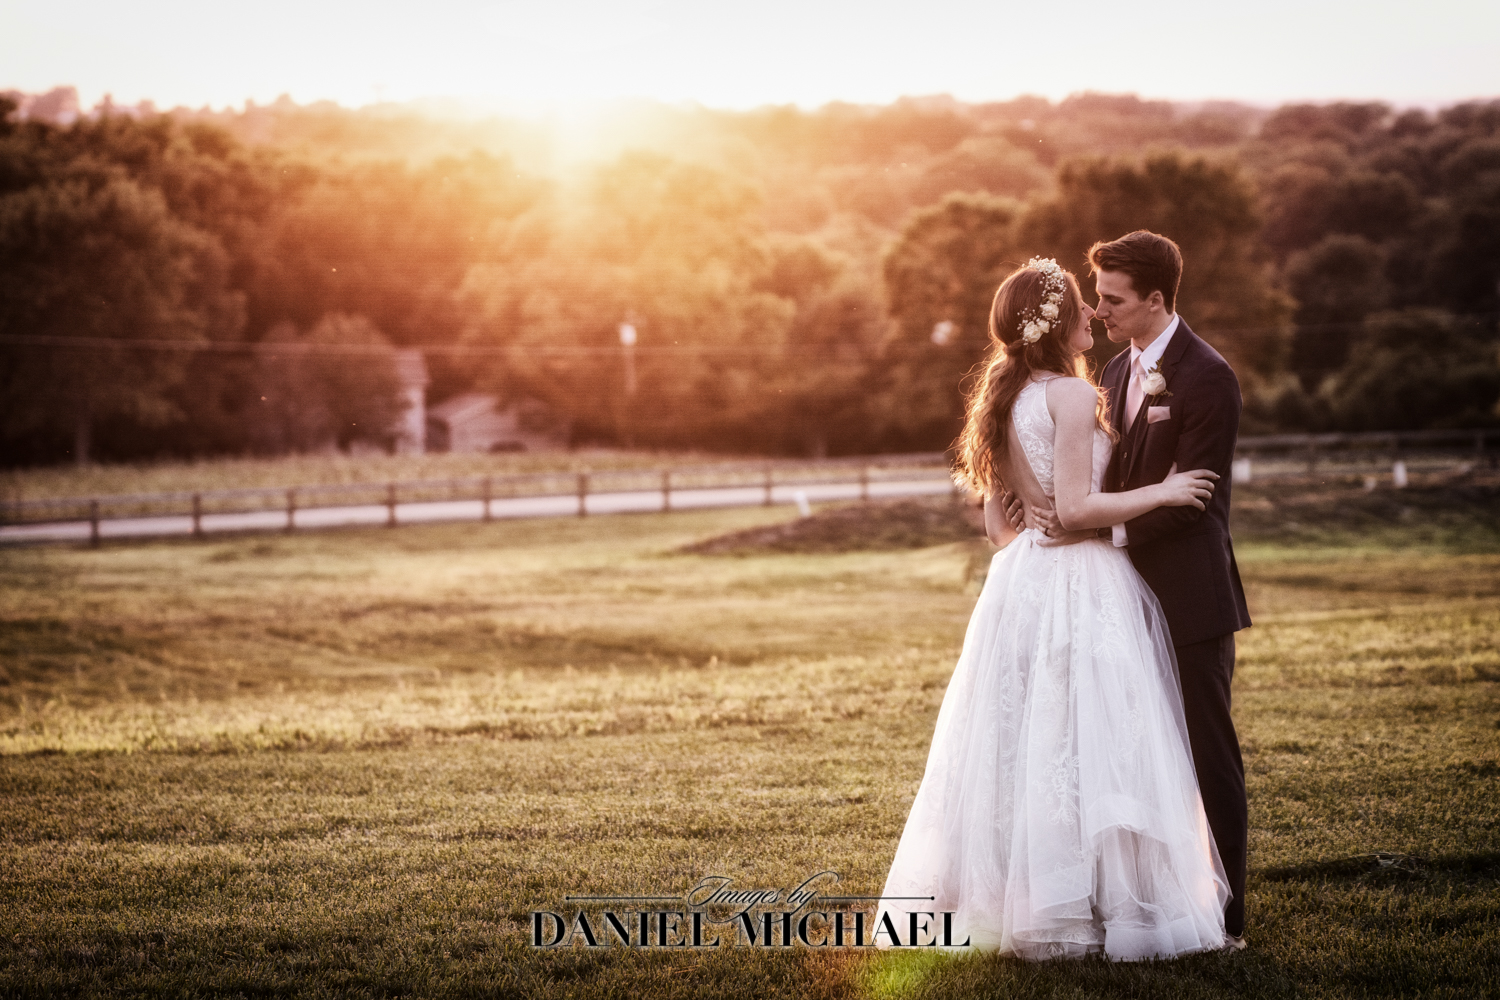 Wedding Photography Questions